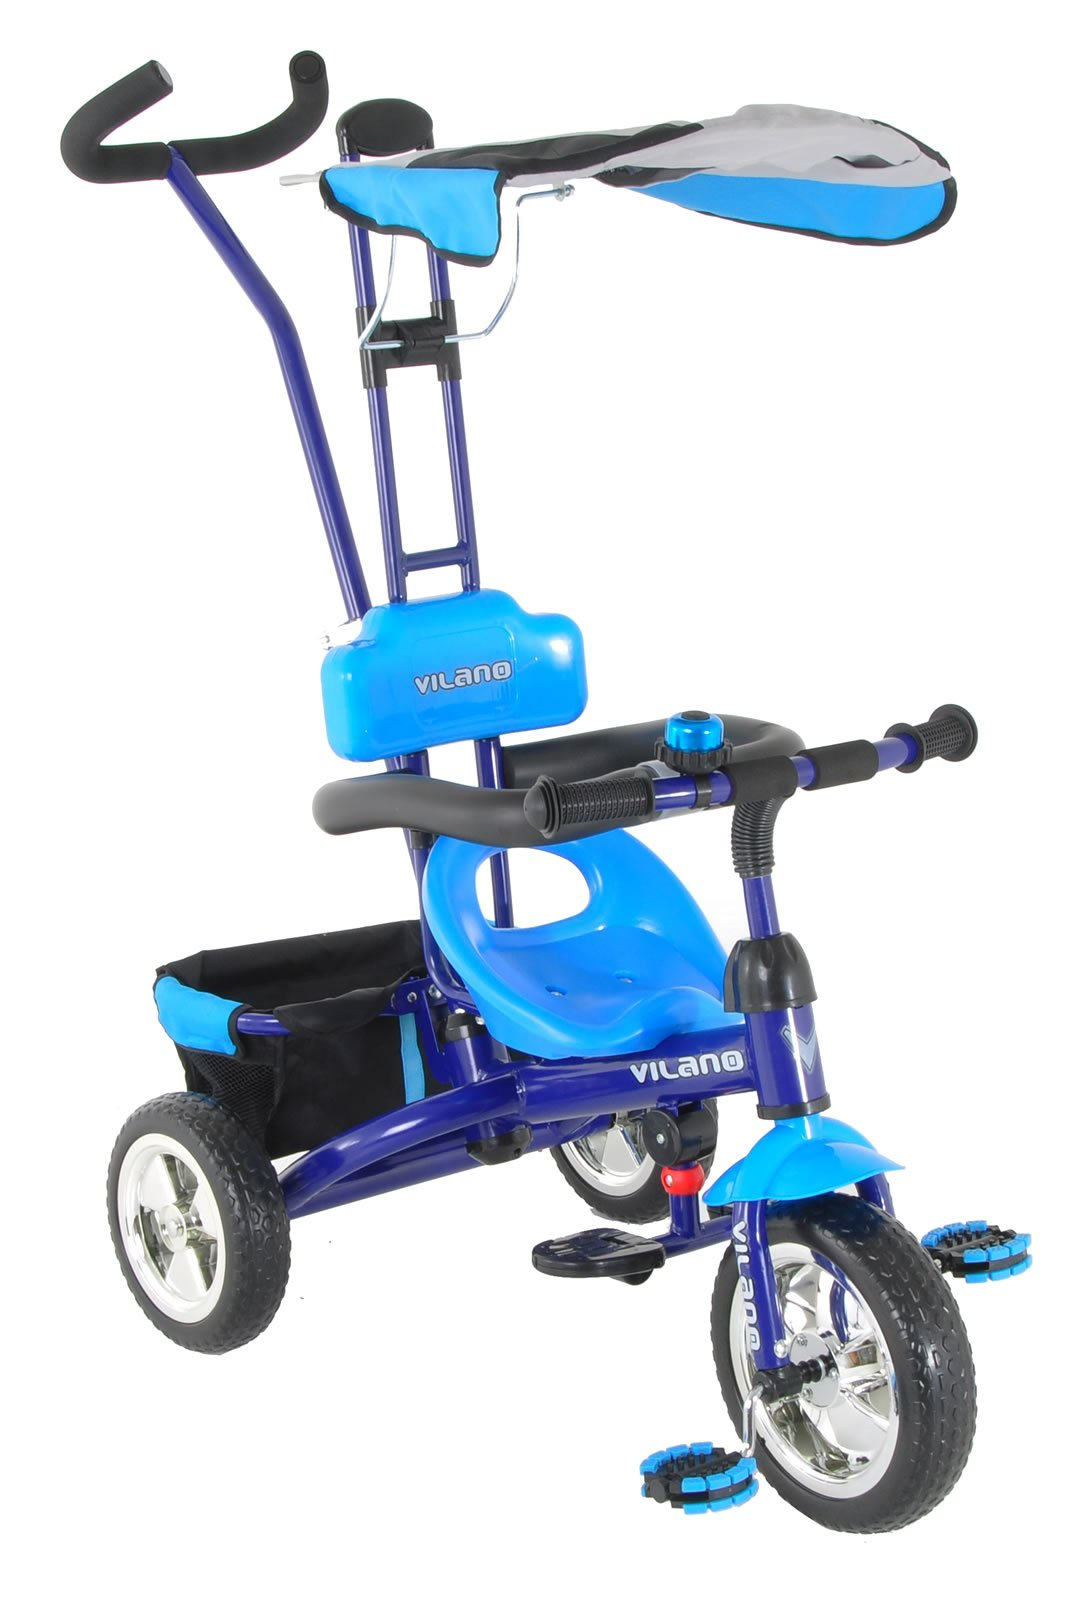 Vilano 3 in 1 Tricycle & Learn to Ride Trike, Blue